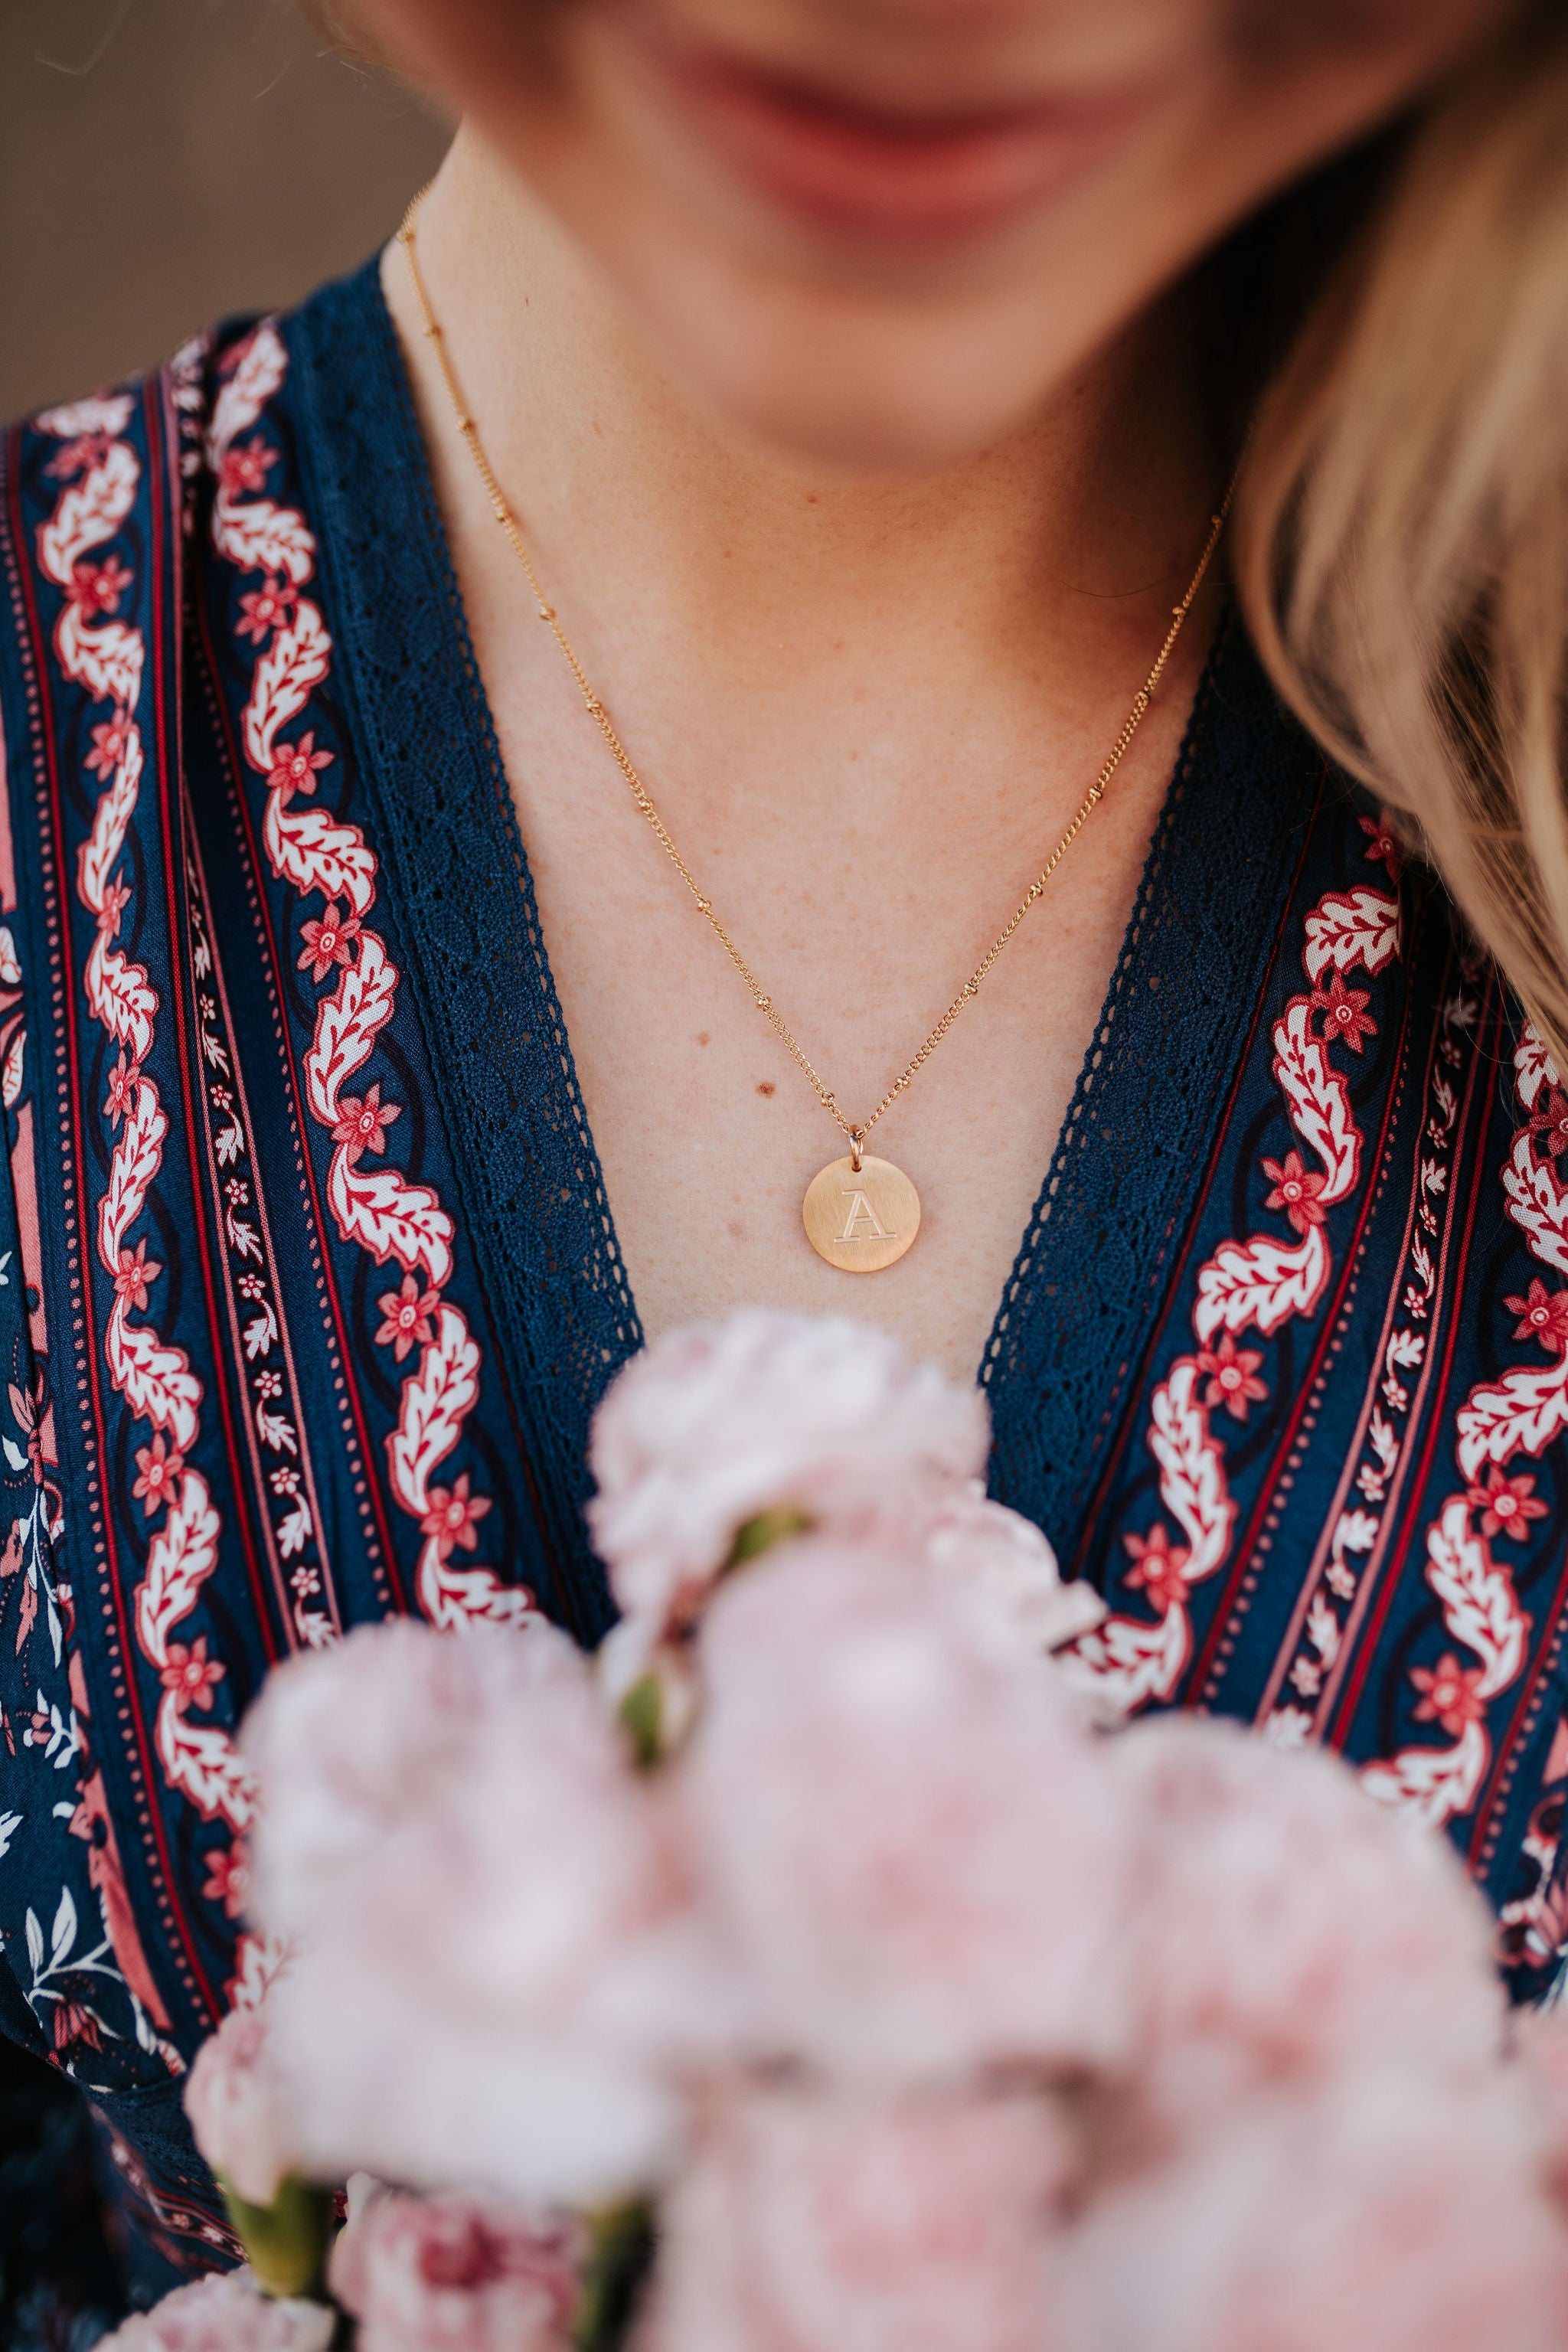 THE GOLD INITIAL COIN NECKLACE